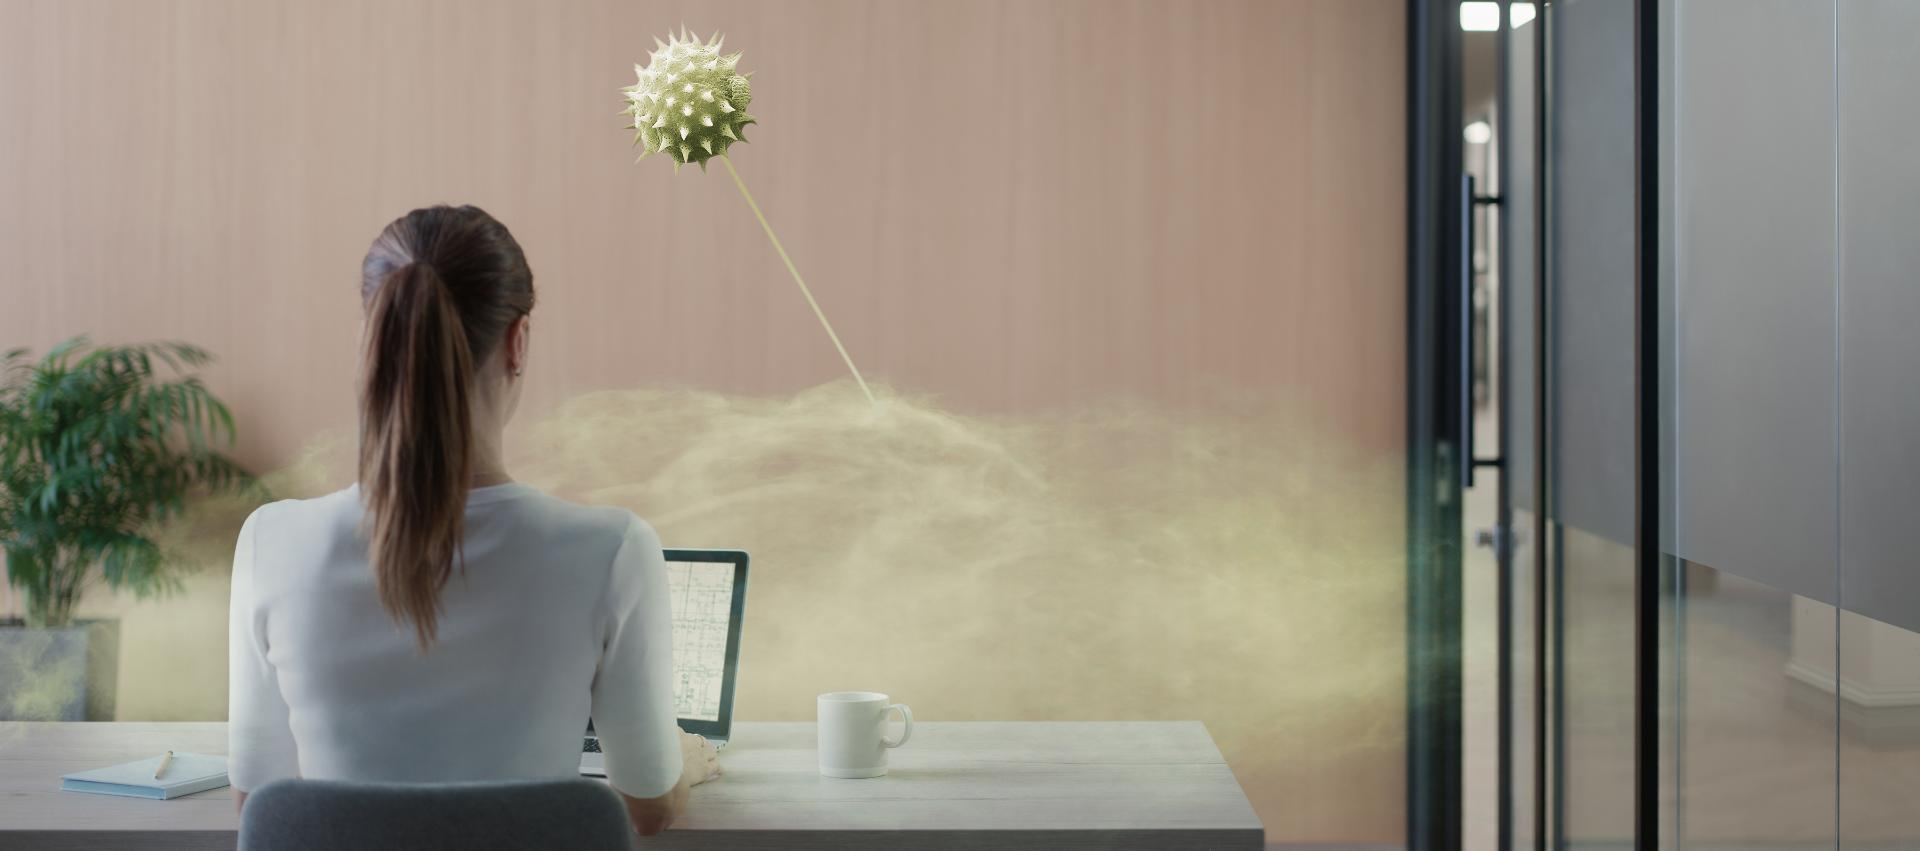 A woman sitting at a desk in an office meeting room. A microscopic image shows pollution in the air.